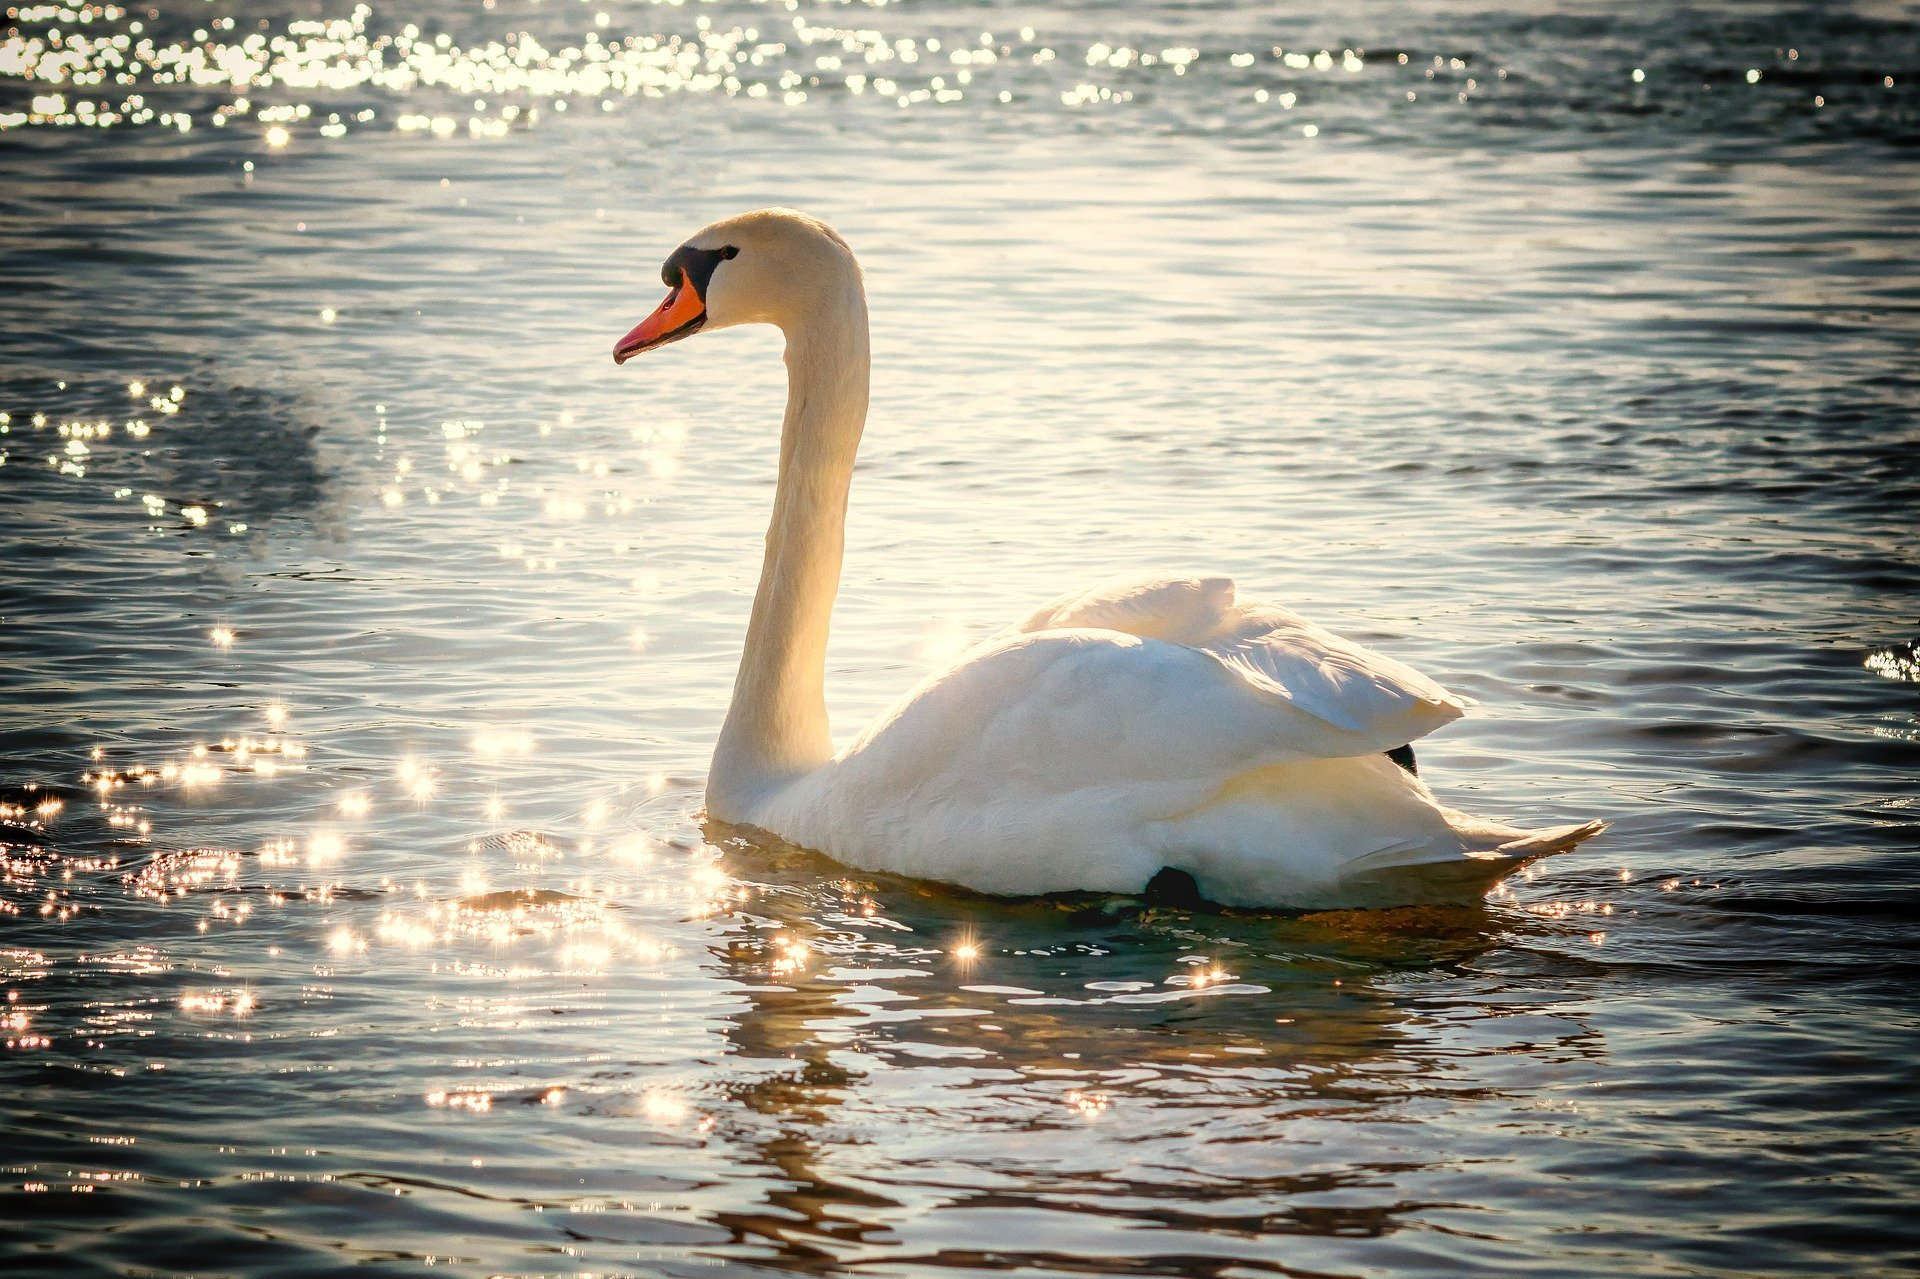 A swan swimming on a body of water. | Source: pxhere.com